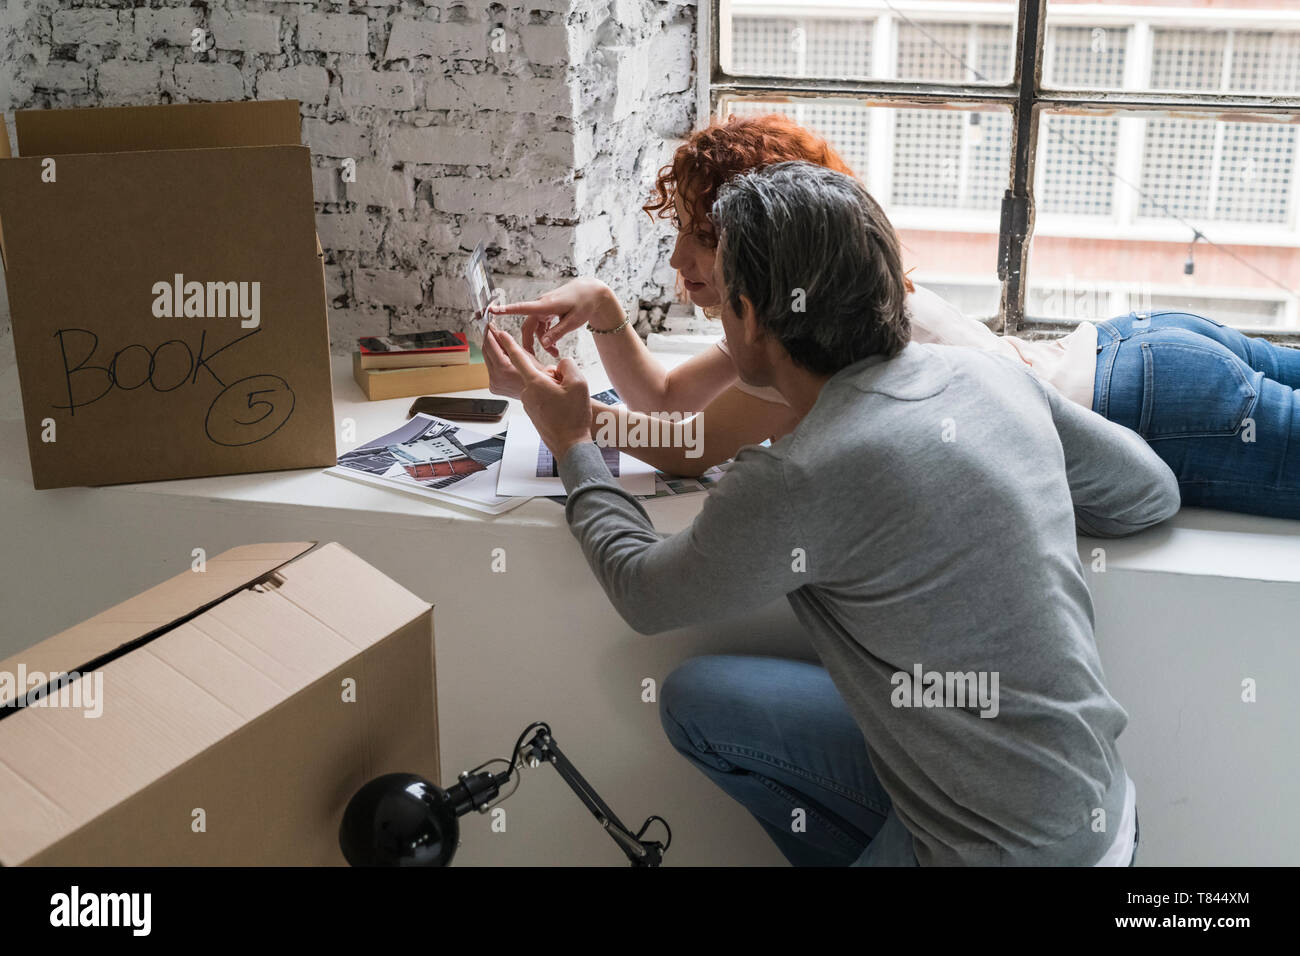 Couple moving into industrial style apartment, on window ledge looking at photo - Stock Image